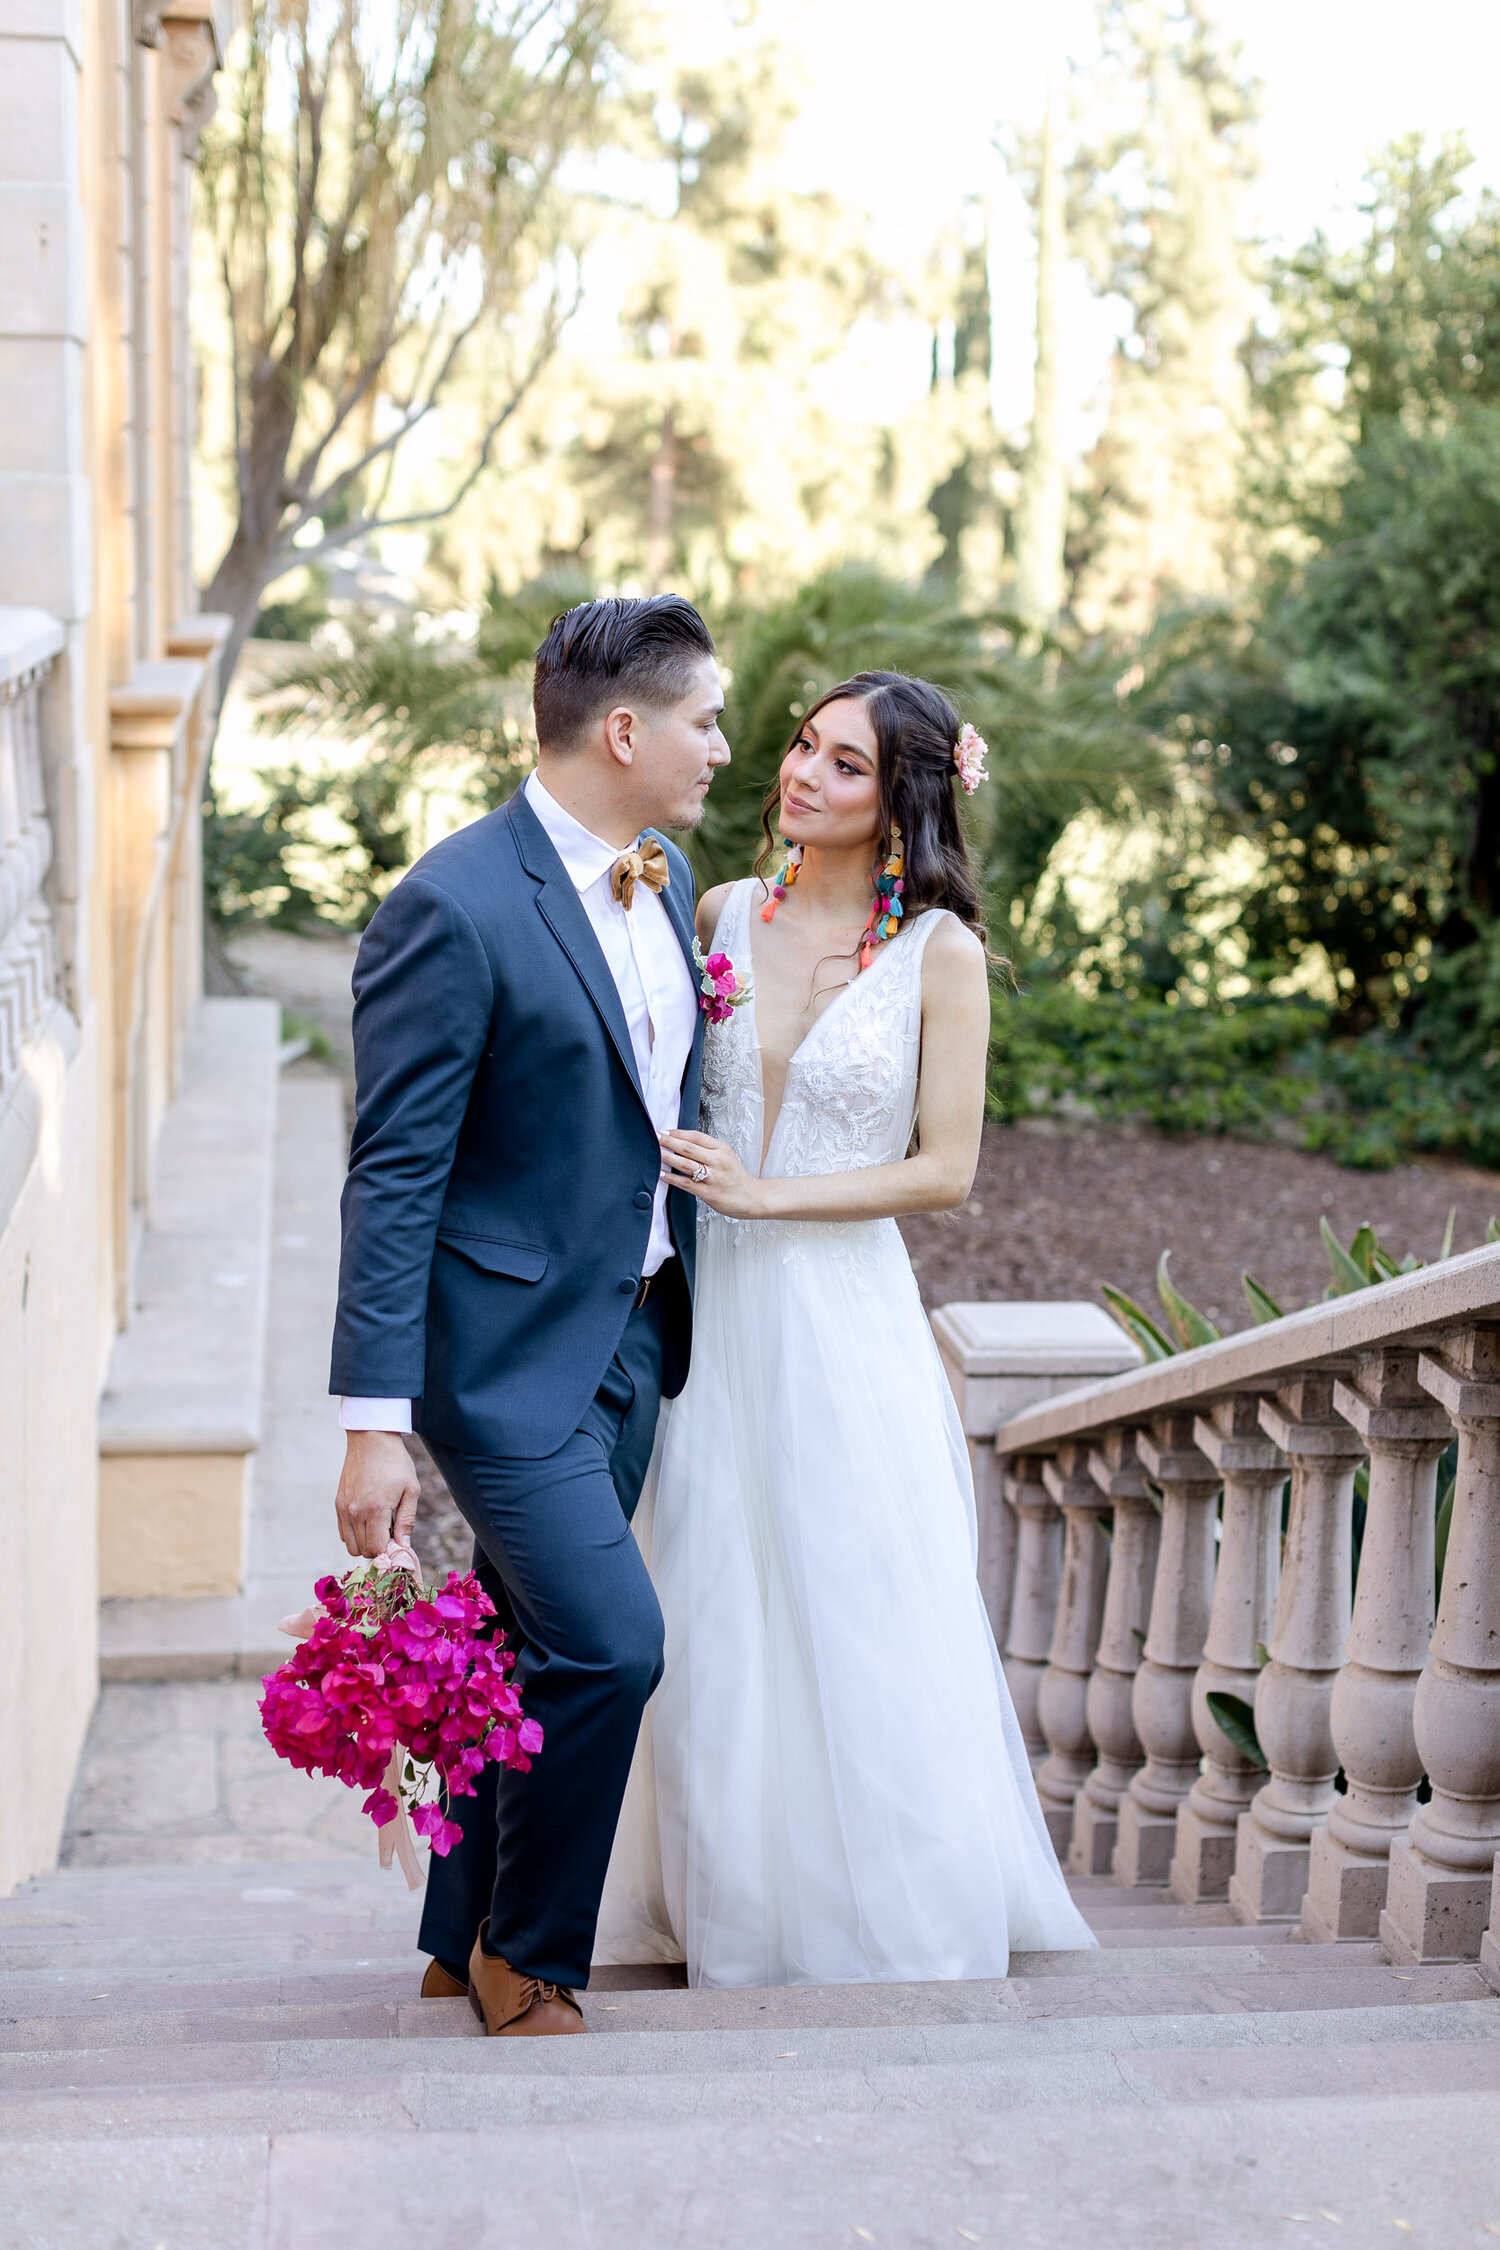 h & l lovely creations bespoke weddings southern california colourful 00015